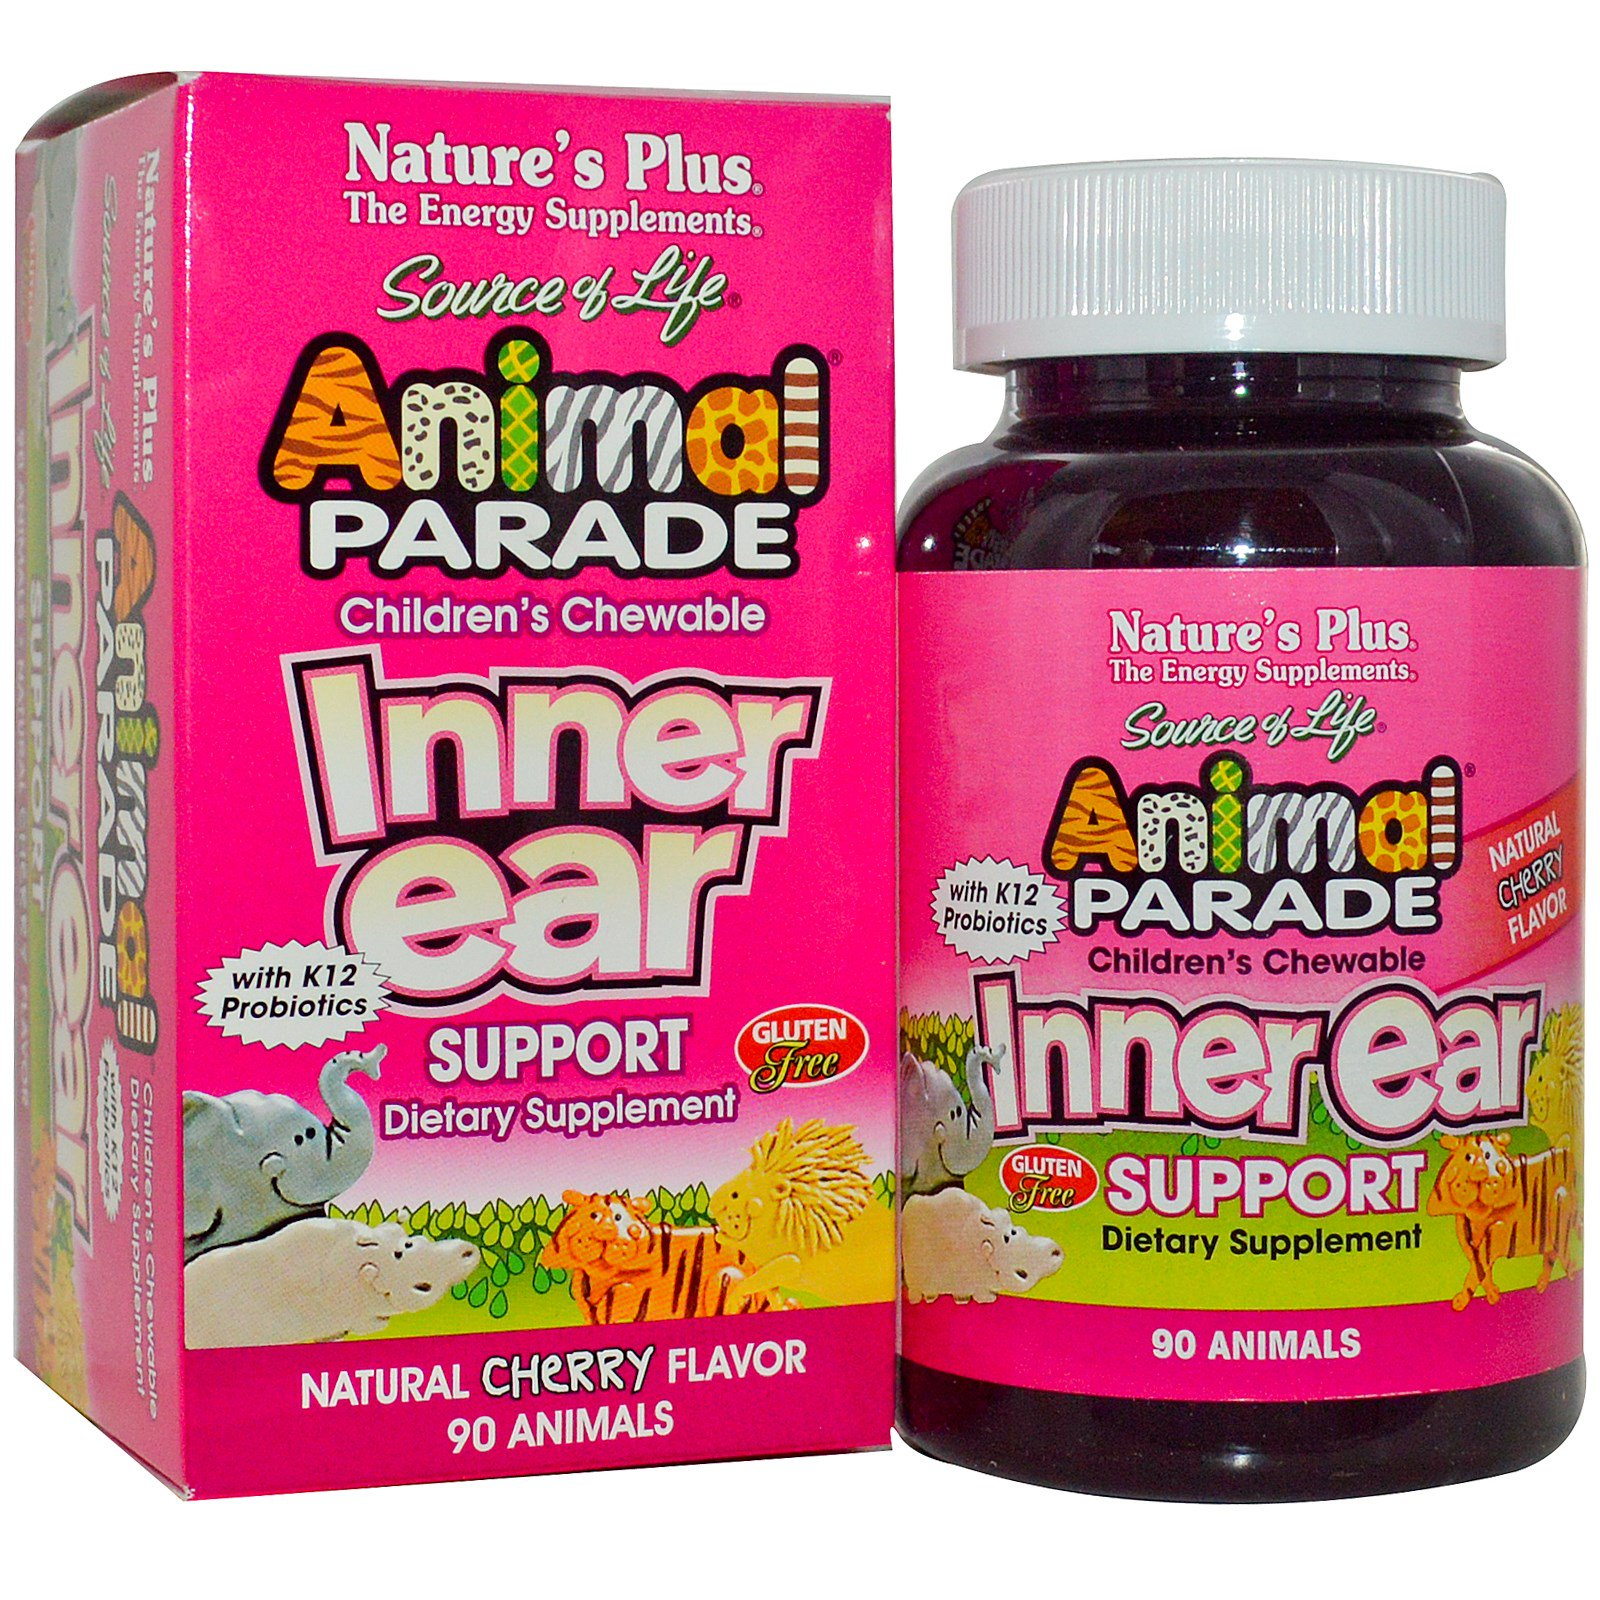 Image of Children's Chewable Inner Ear Support, Natural Cherry Flavor (90 Animals) - Nature's Plus 0097467299498